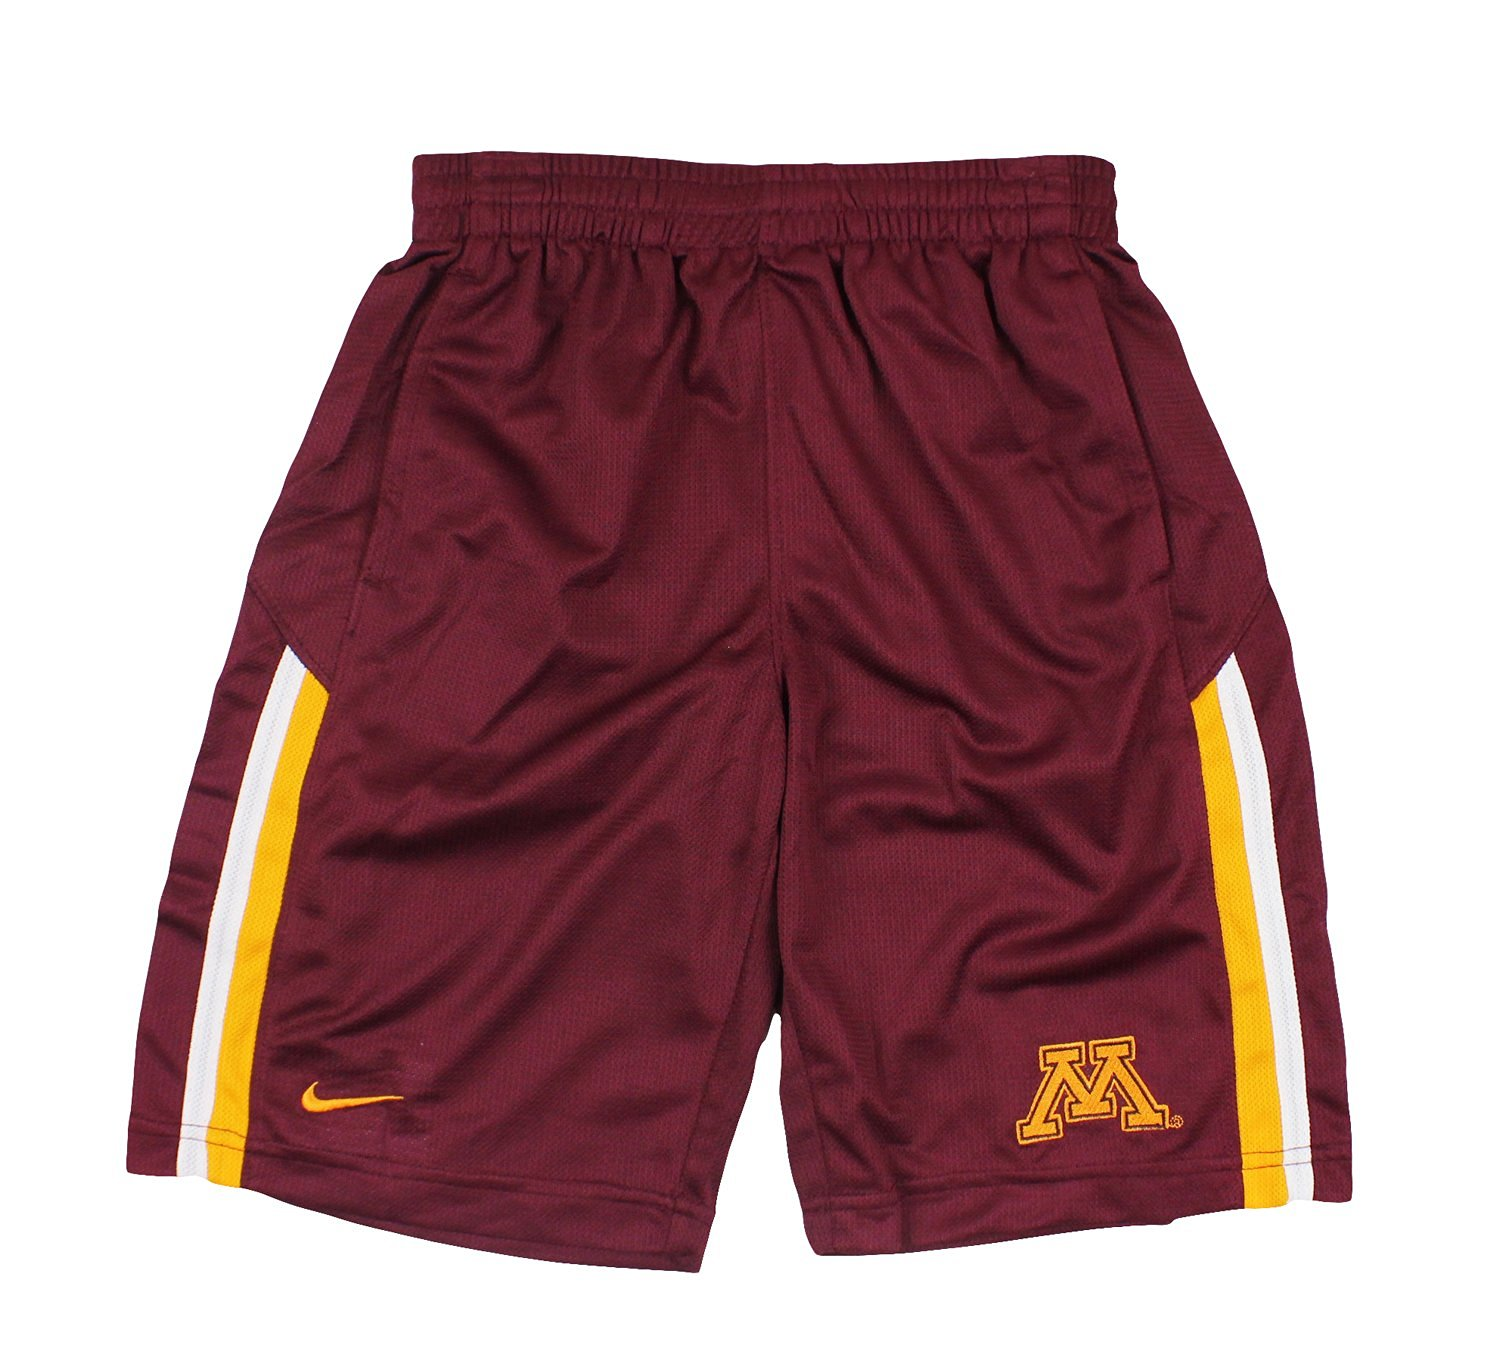 603b8234b6 Get Quotations · Nike NCAA Big Boys Youth Minnesota Golden Gophers Team  DriFIT Shorts